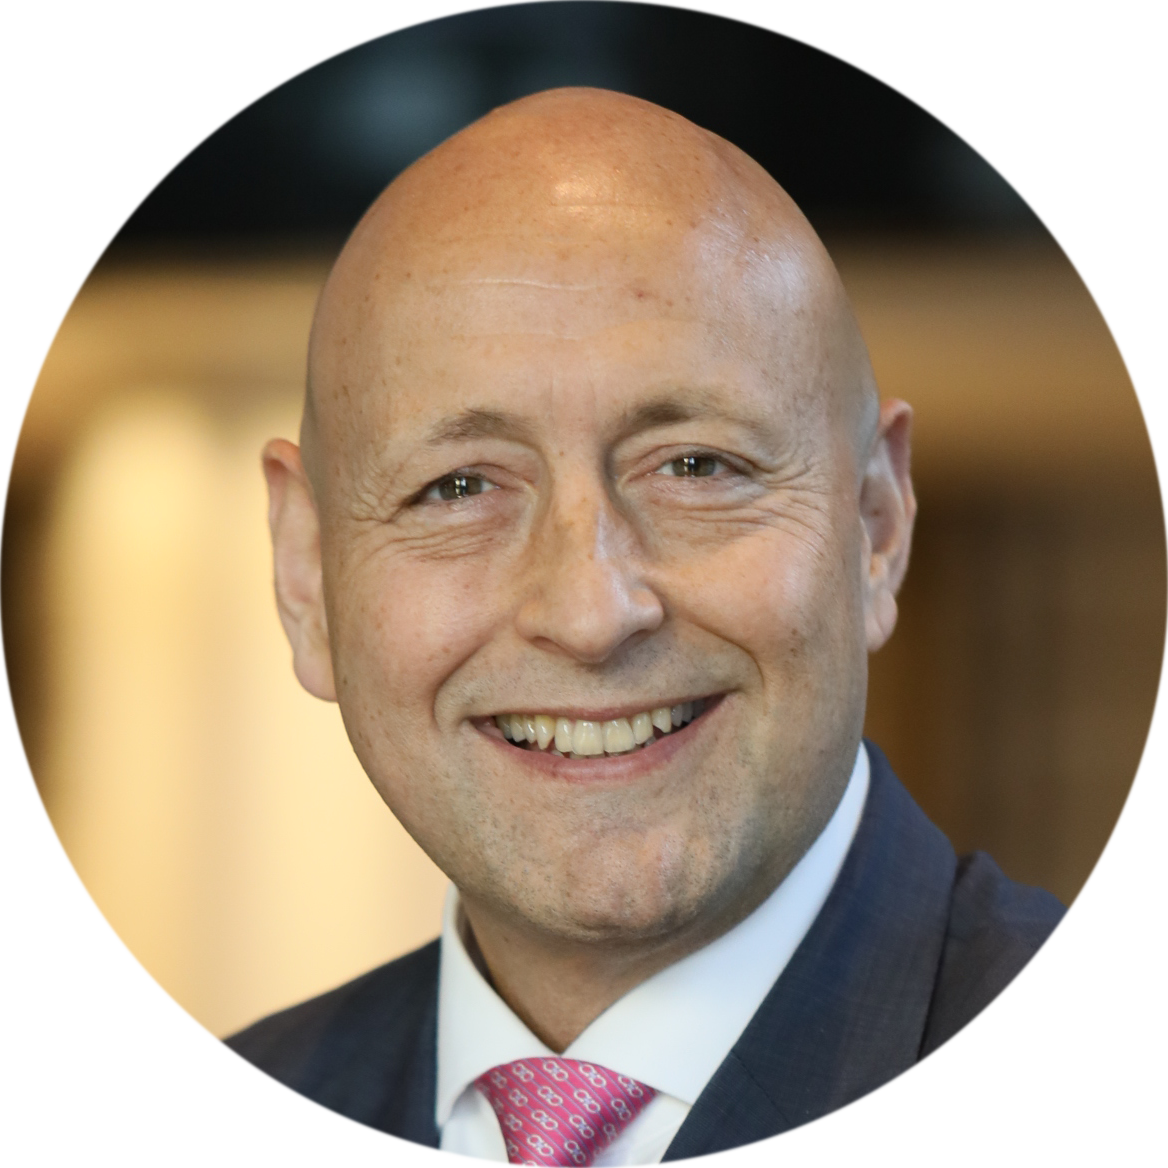 <strong>Paul Jackson</strong><br><em>Managing Director, APAC Cyber Risk Practice Leader</em><br><em>Kroll</em><br><em>Hong Kong</em>